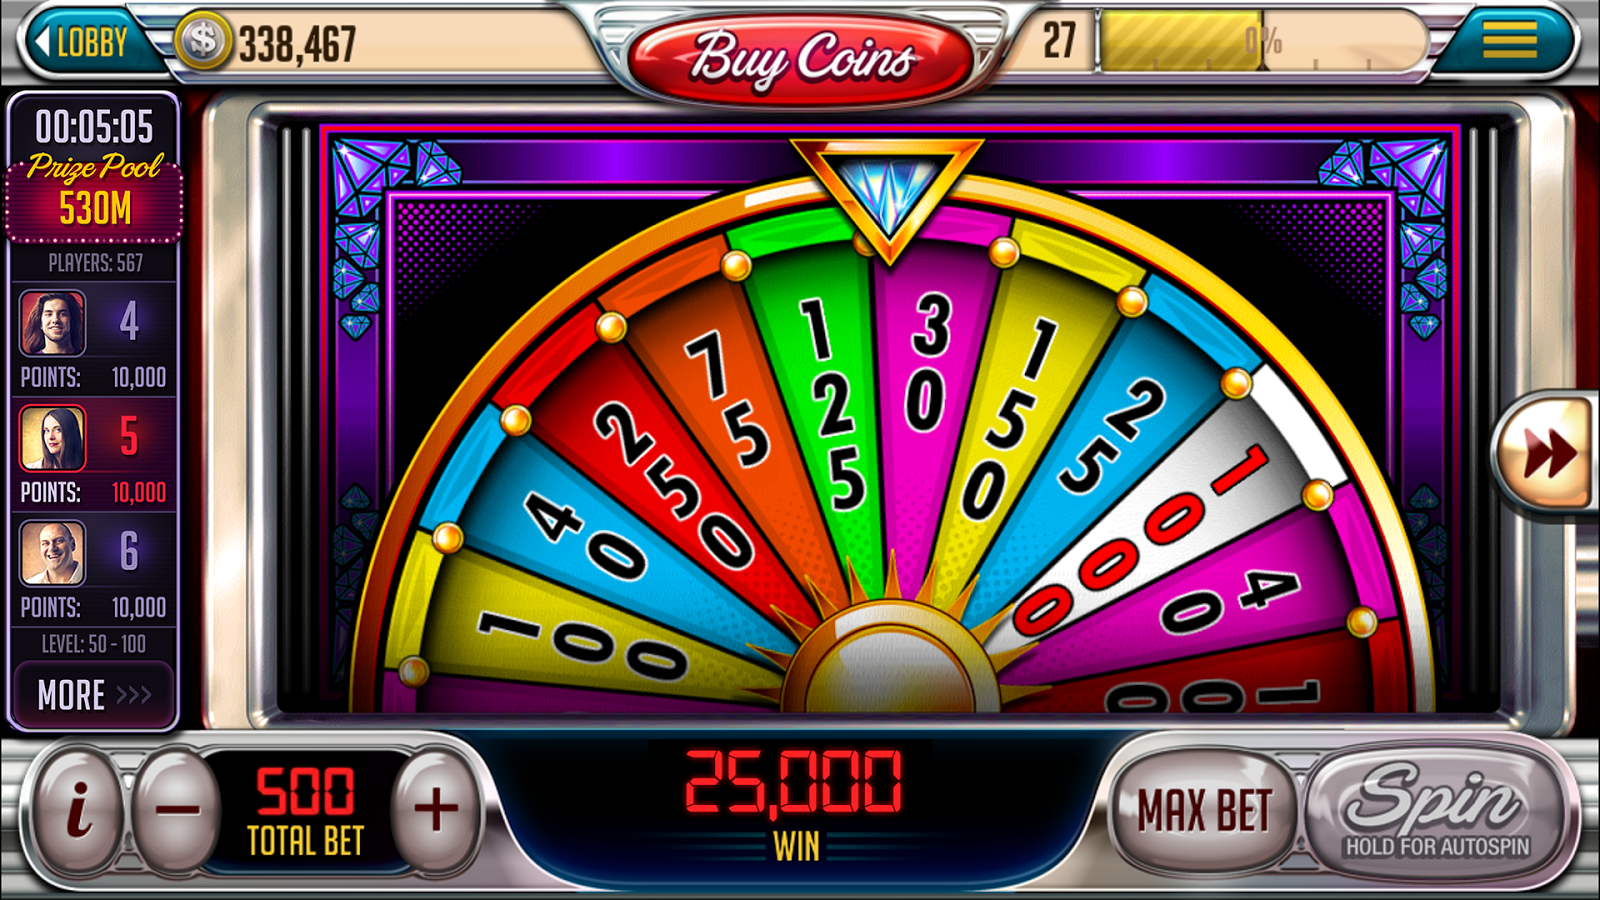 How to win on slots in fallout new vegas